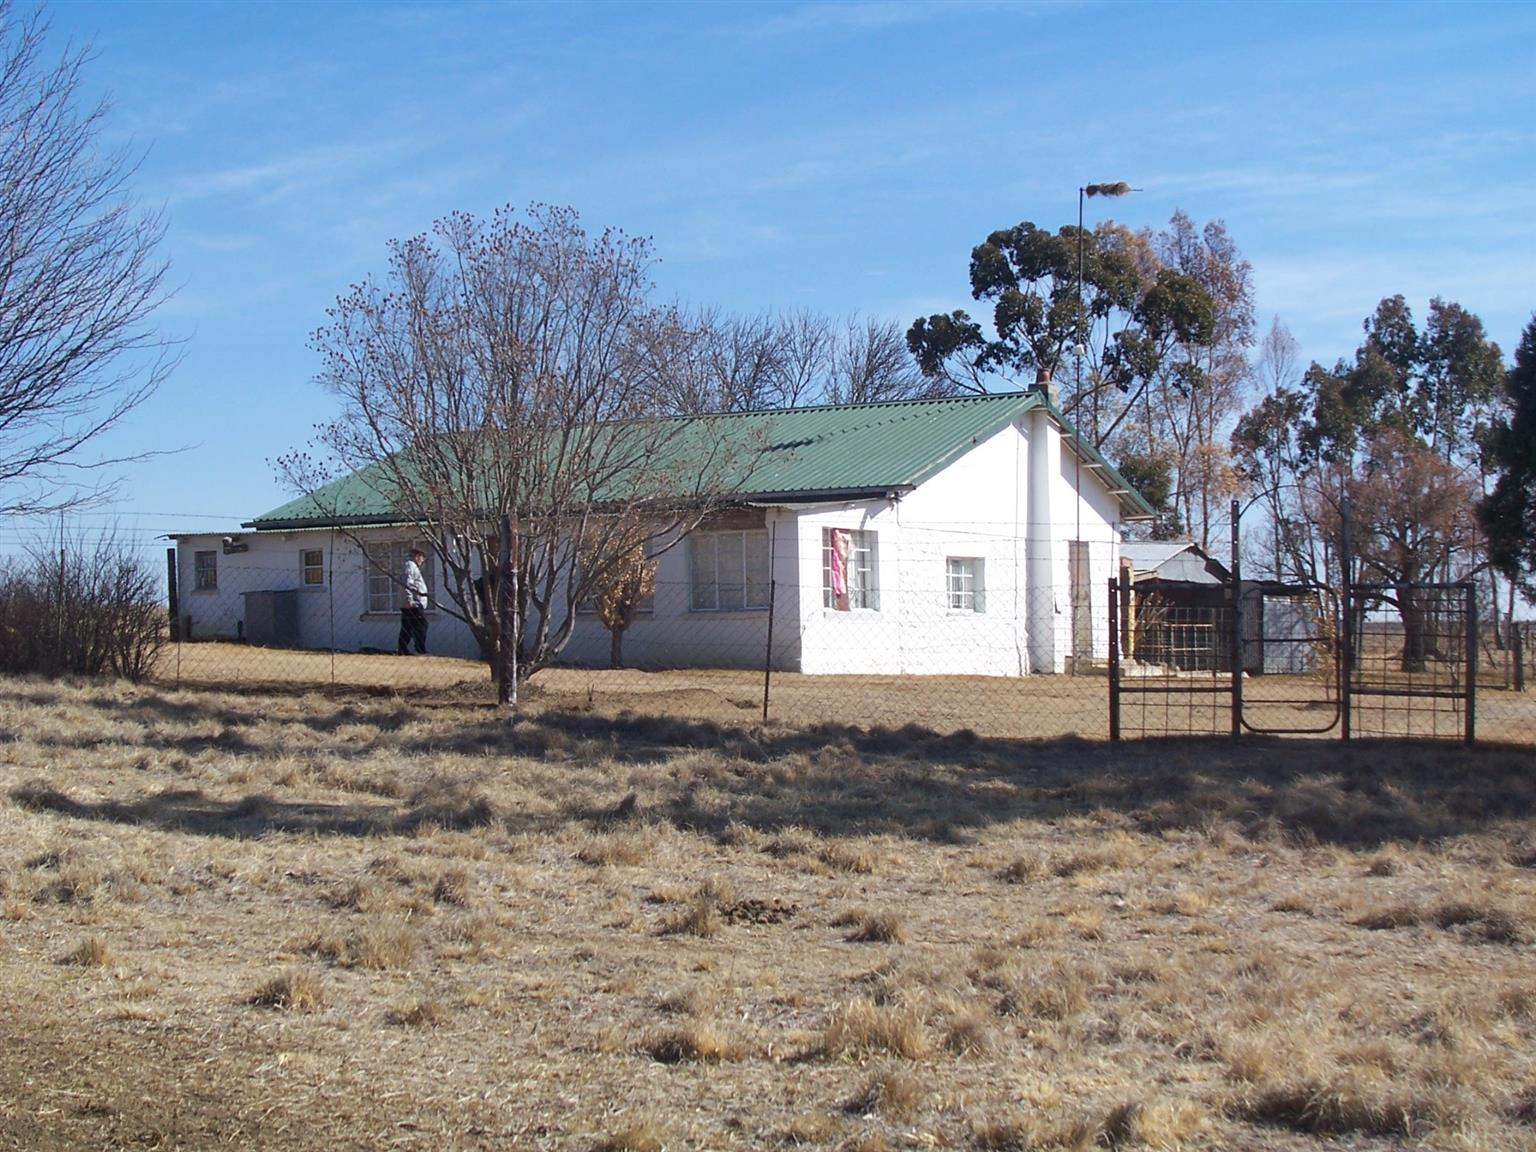 65 hectares Frams for sale in Vrede just two hours from Johannesburg.